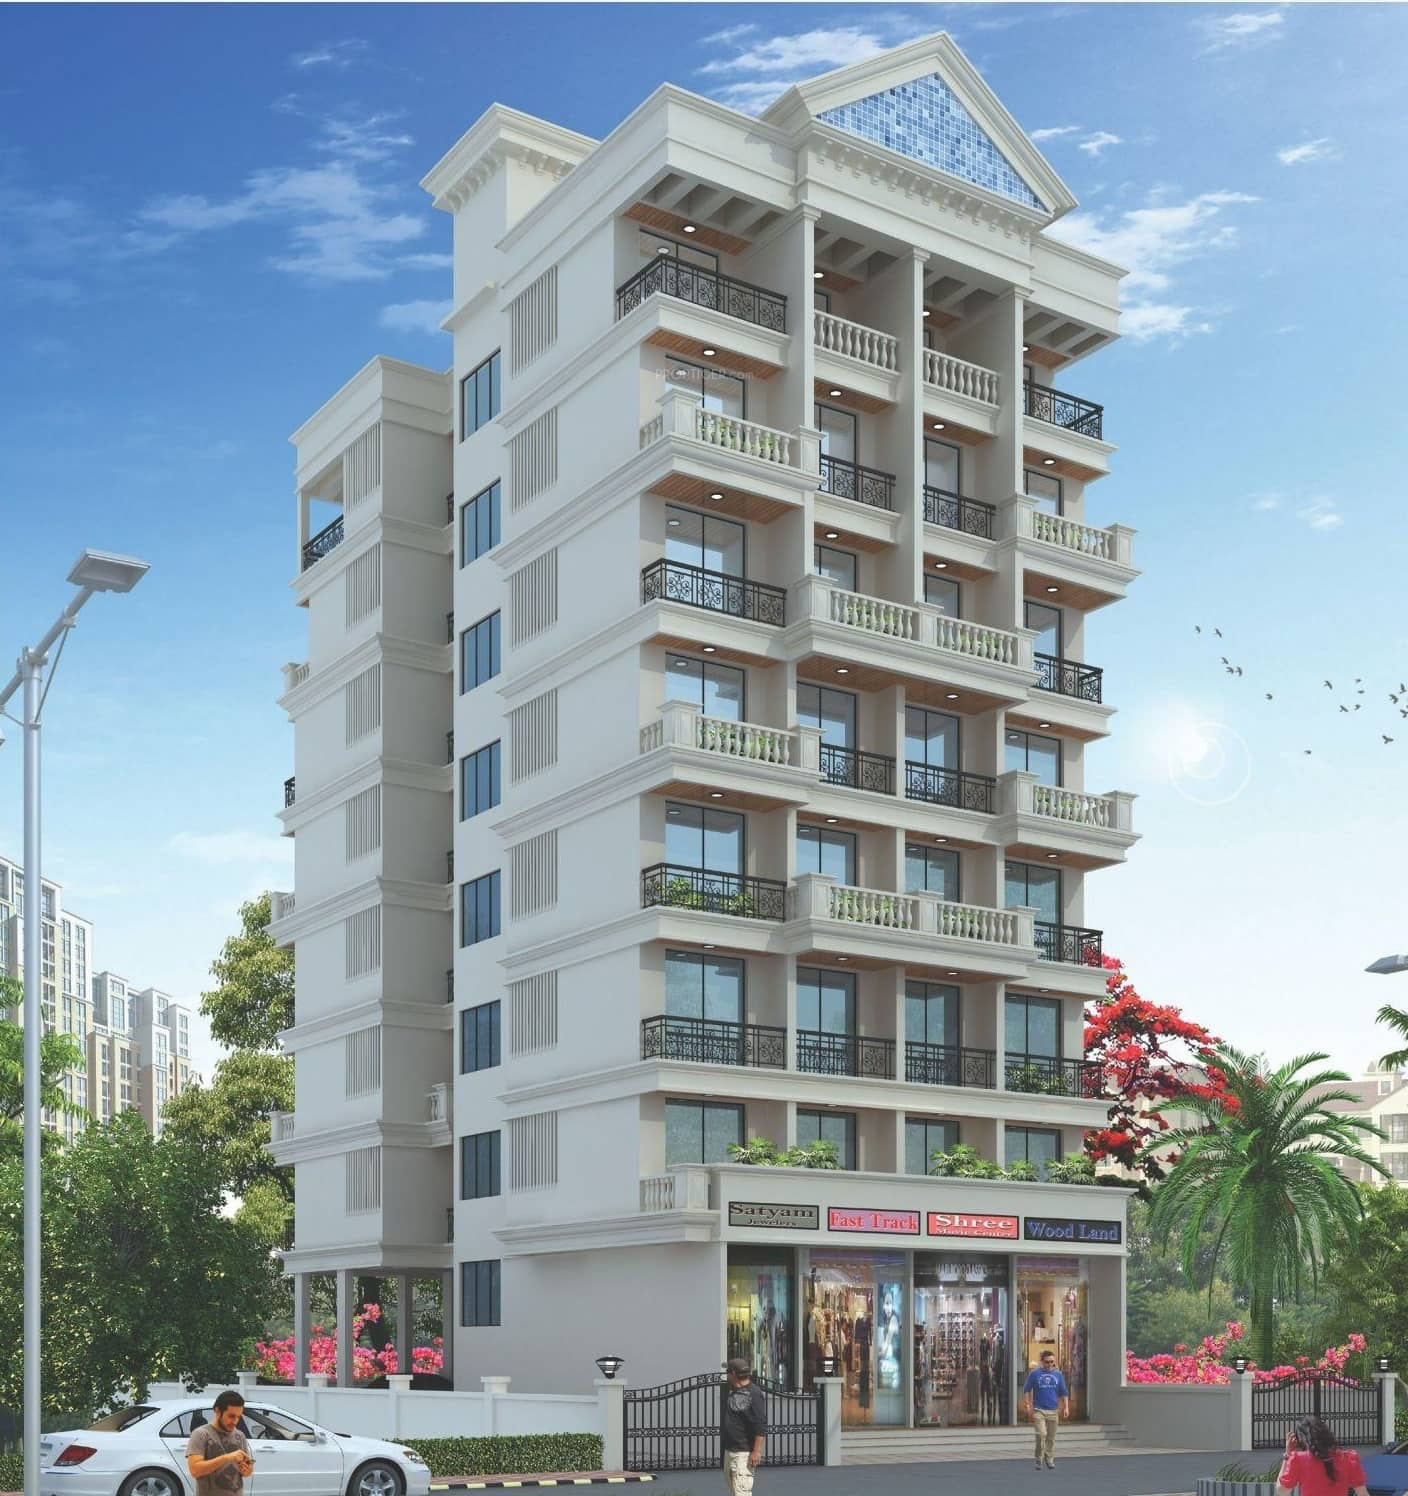 243 Sq Ft 1 BHK 1T Apartment For Sale In Omcon Real Estate